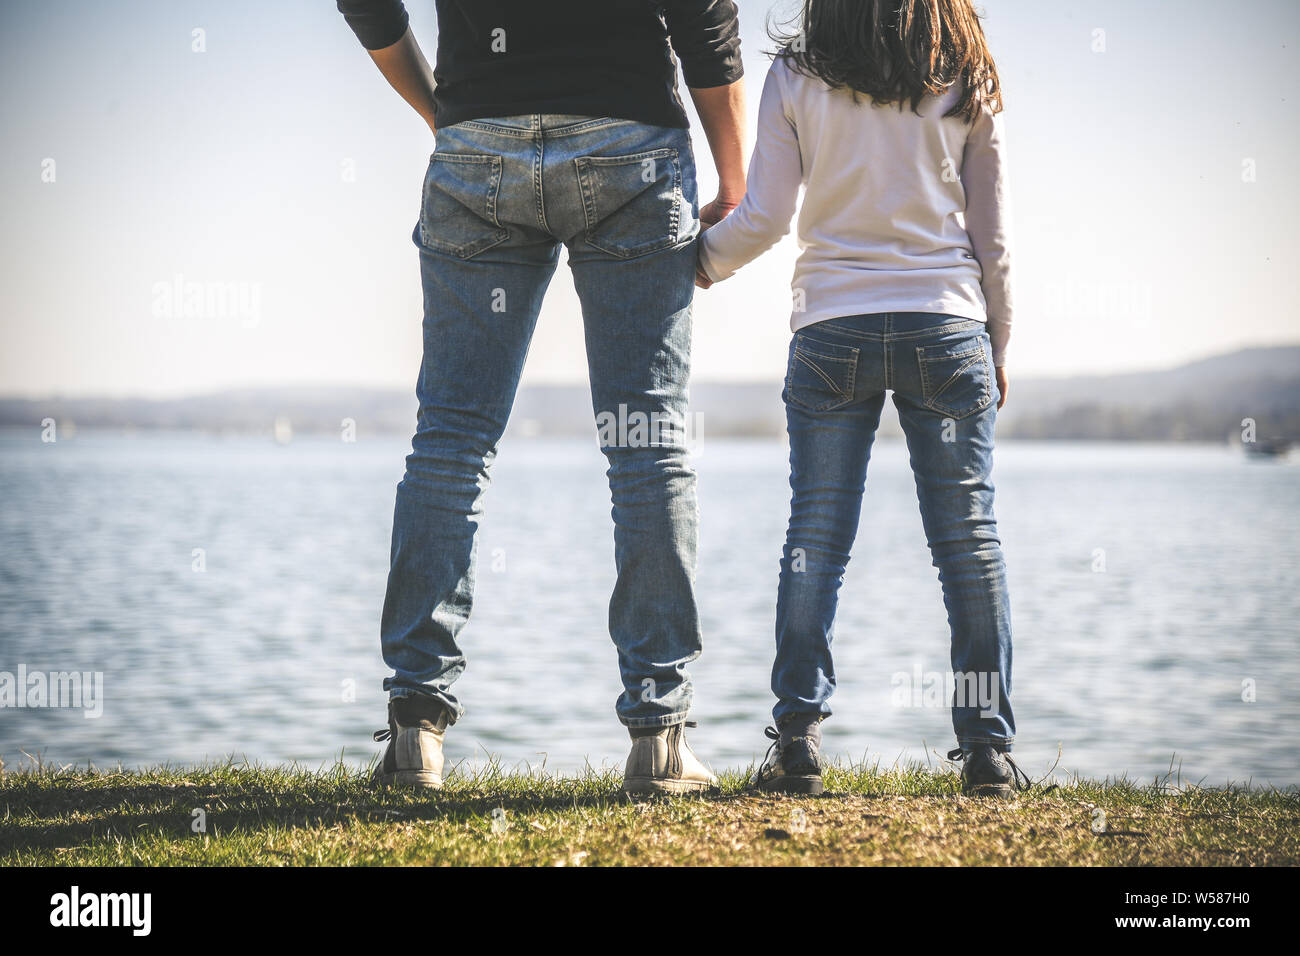 Father and daughter holding hands near the sea. two people standing on the seashore in a beautiful sunny day. Dad and little girl looking at horizon. Stock Photo